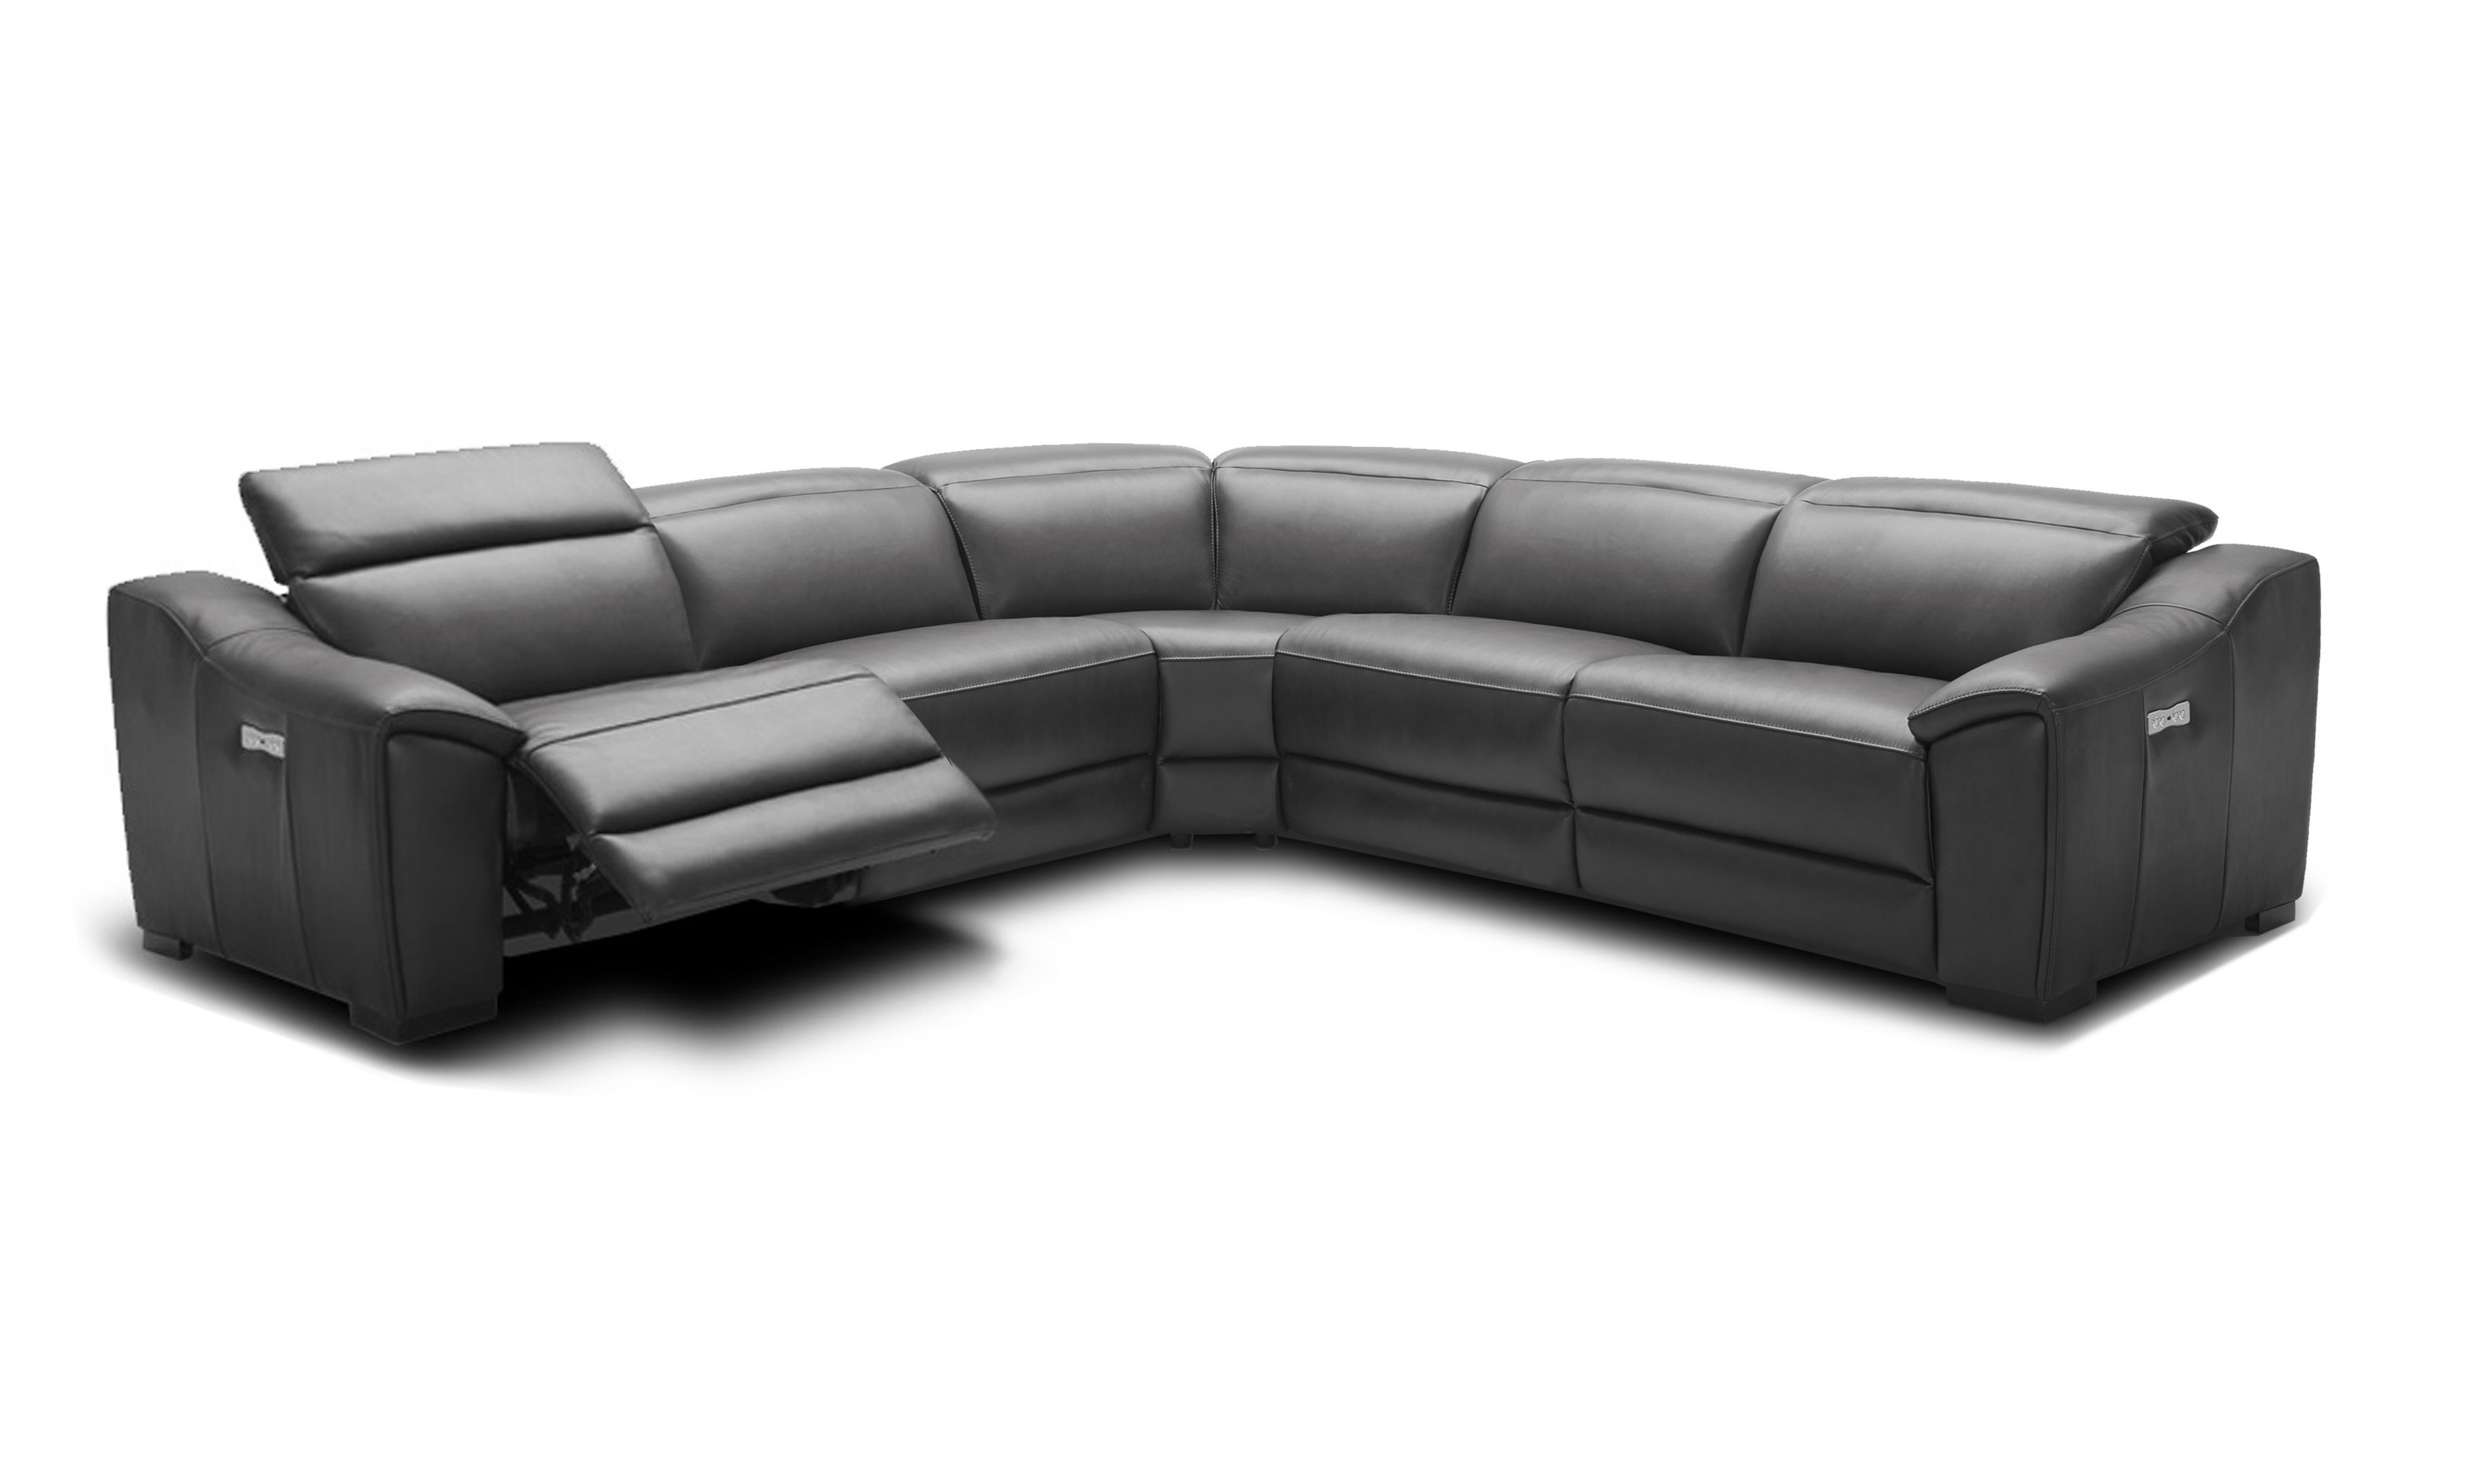 Leather Sectional Sofa Recliner Advanced Adjustable Curved Sectional Sofa In Leather